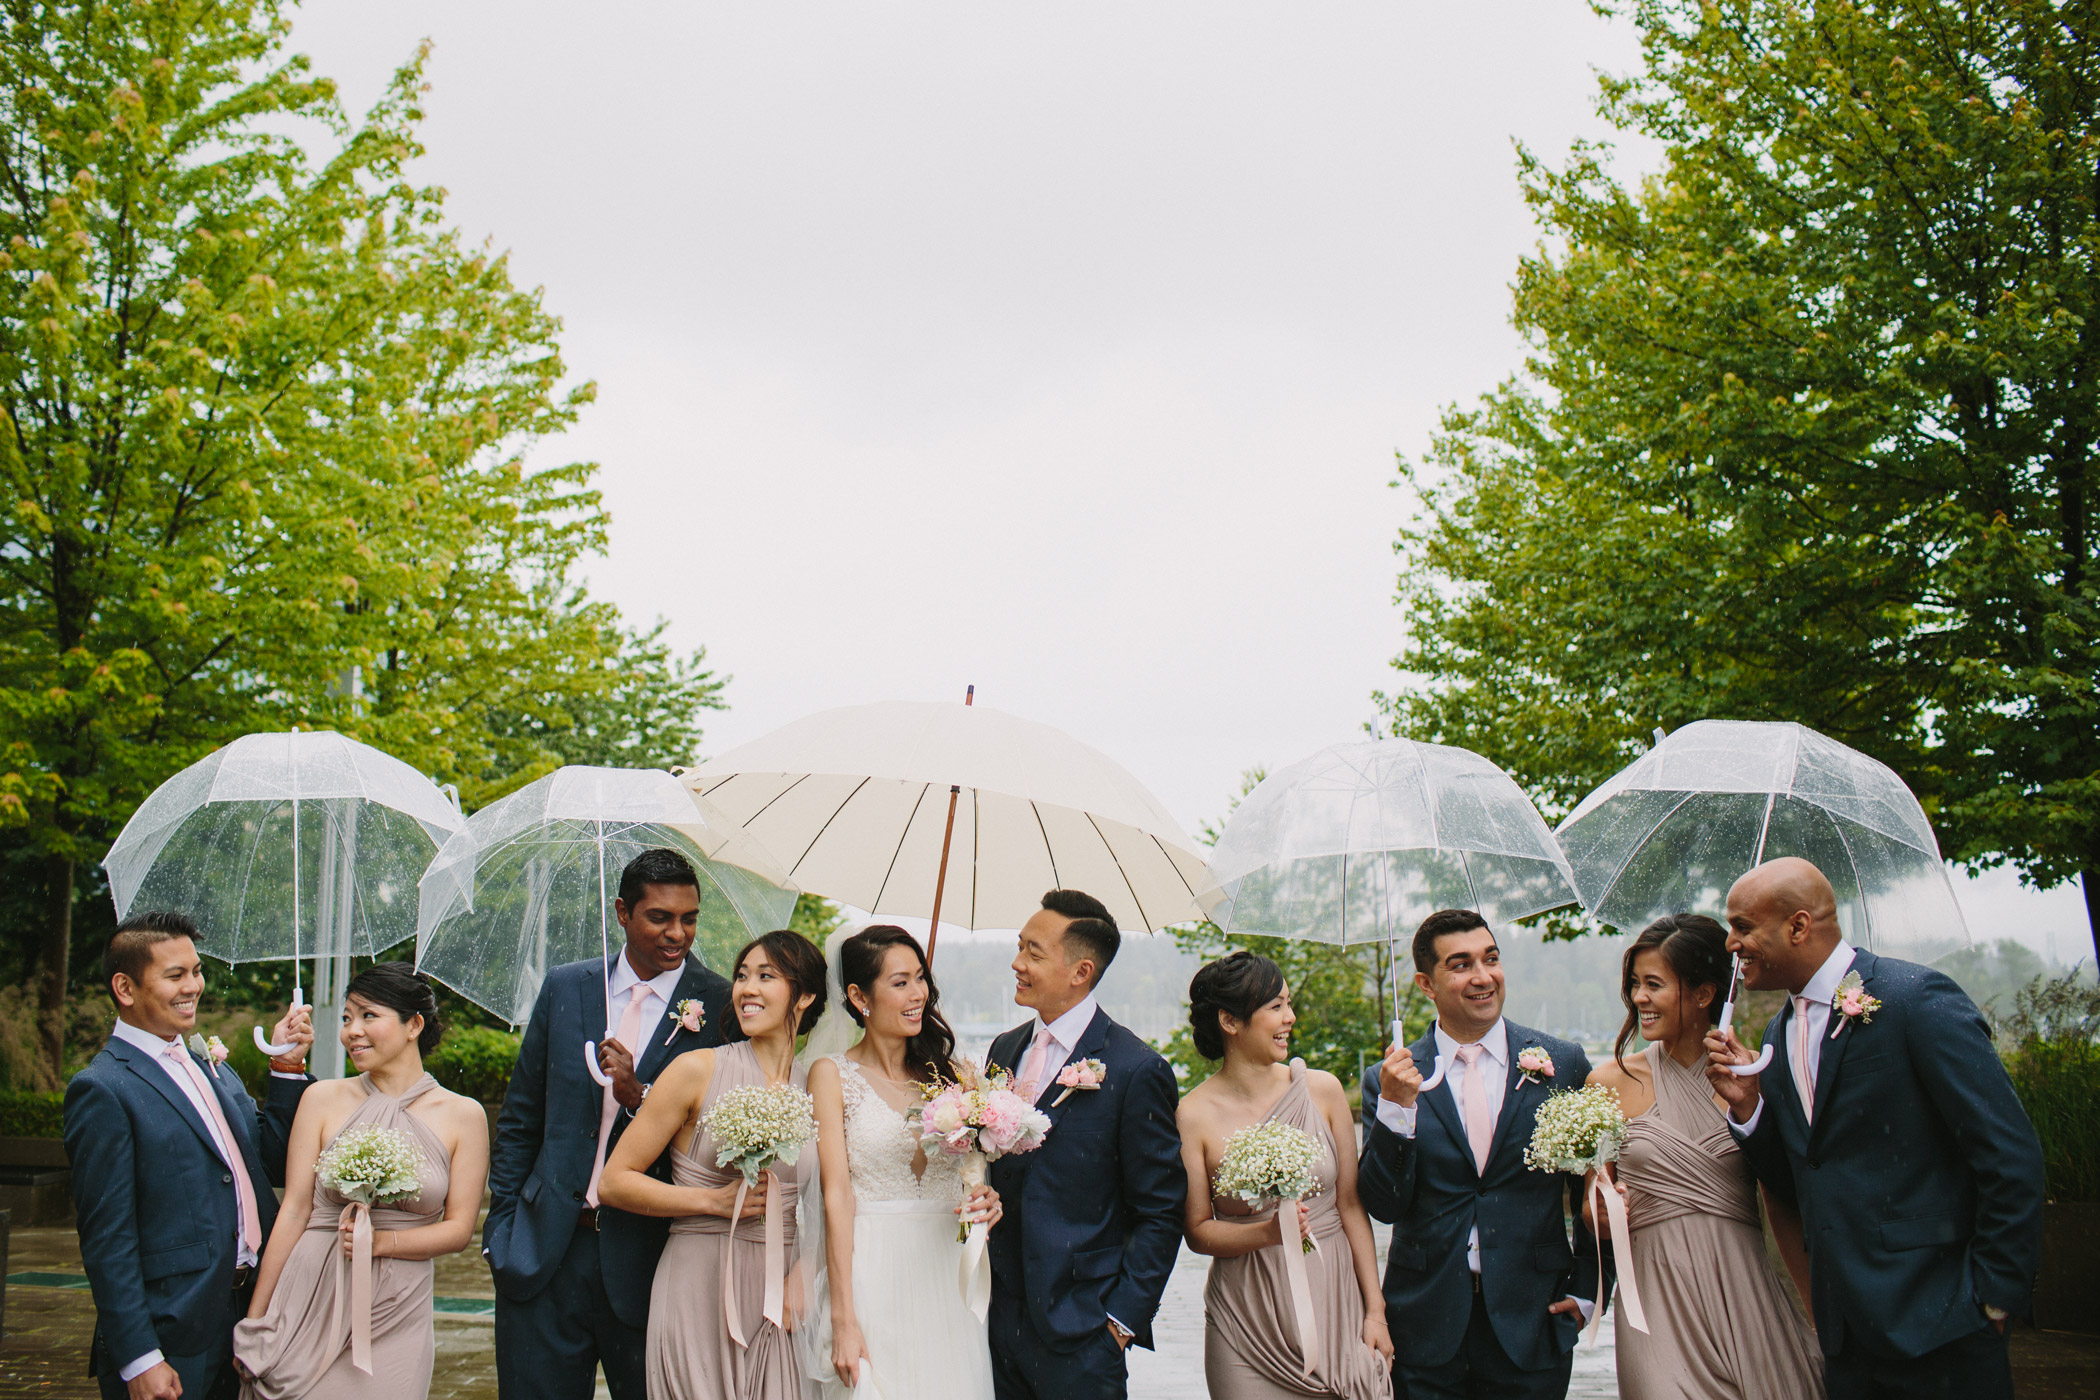 Vancouver Wedding Party with Umbrellas